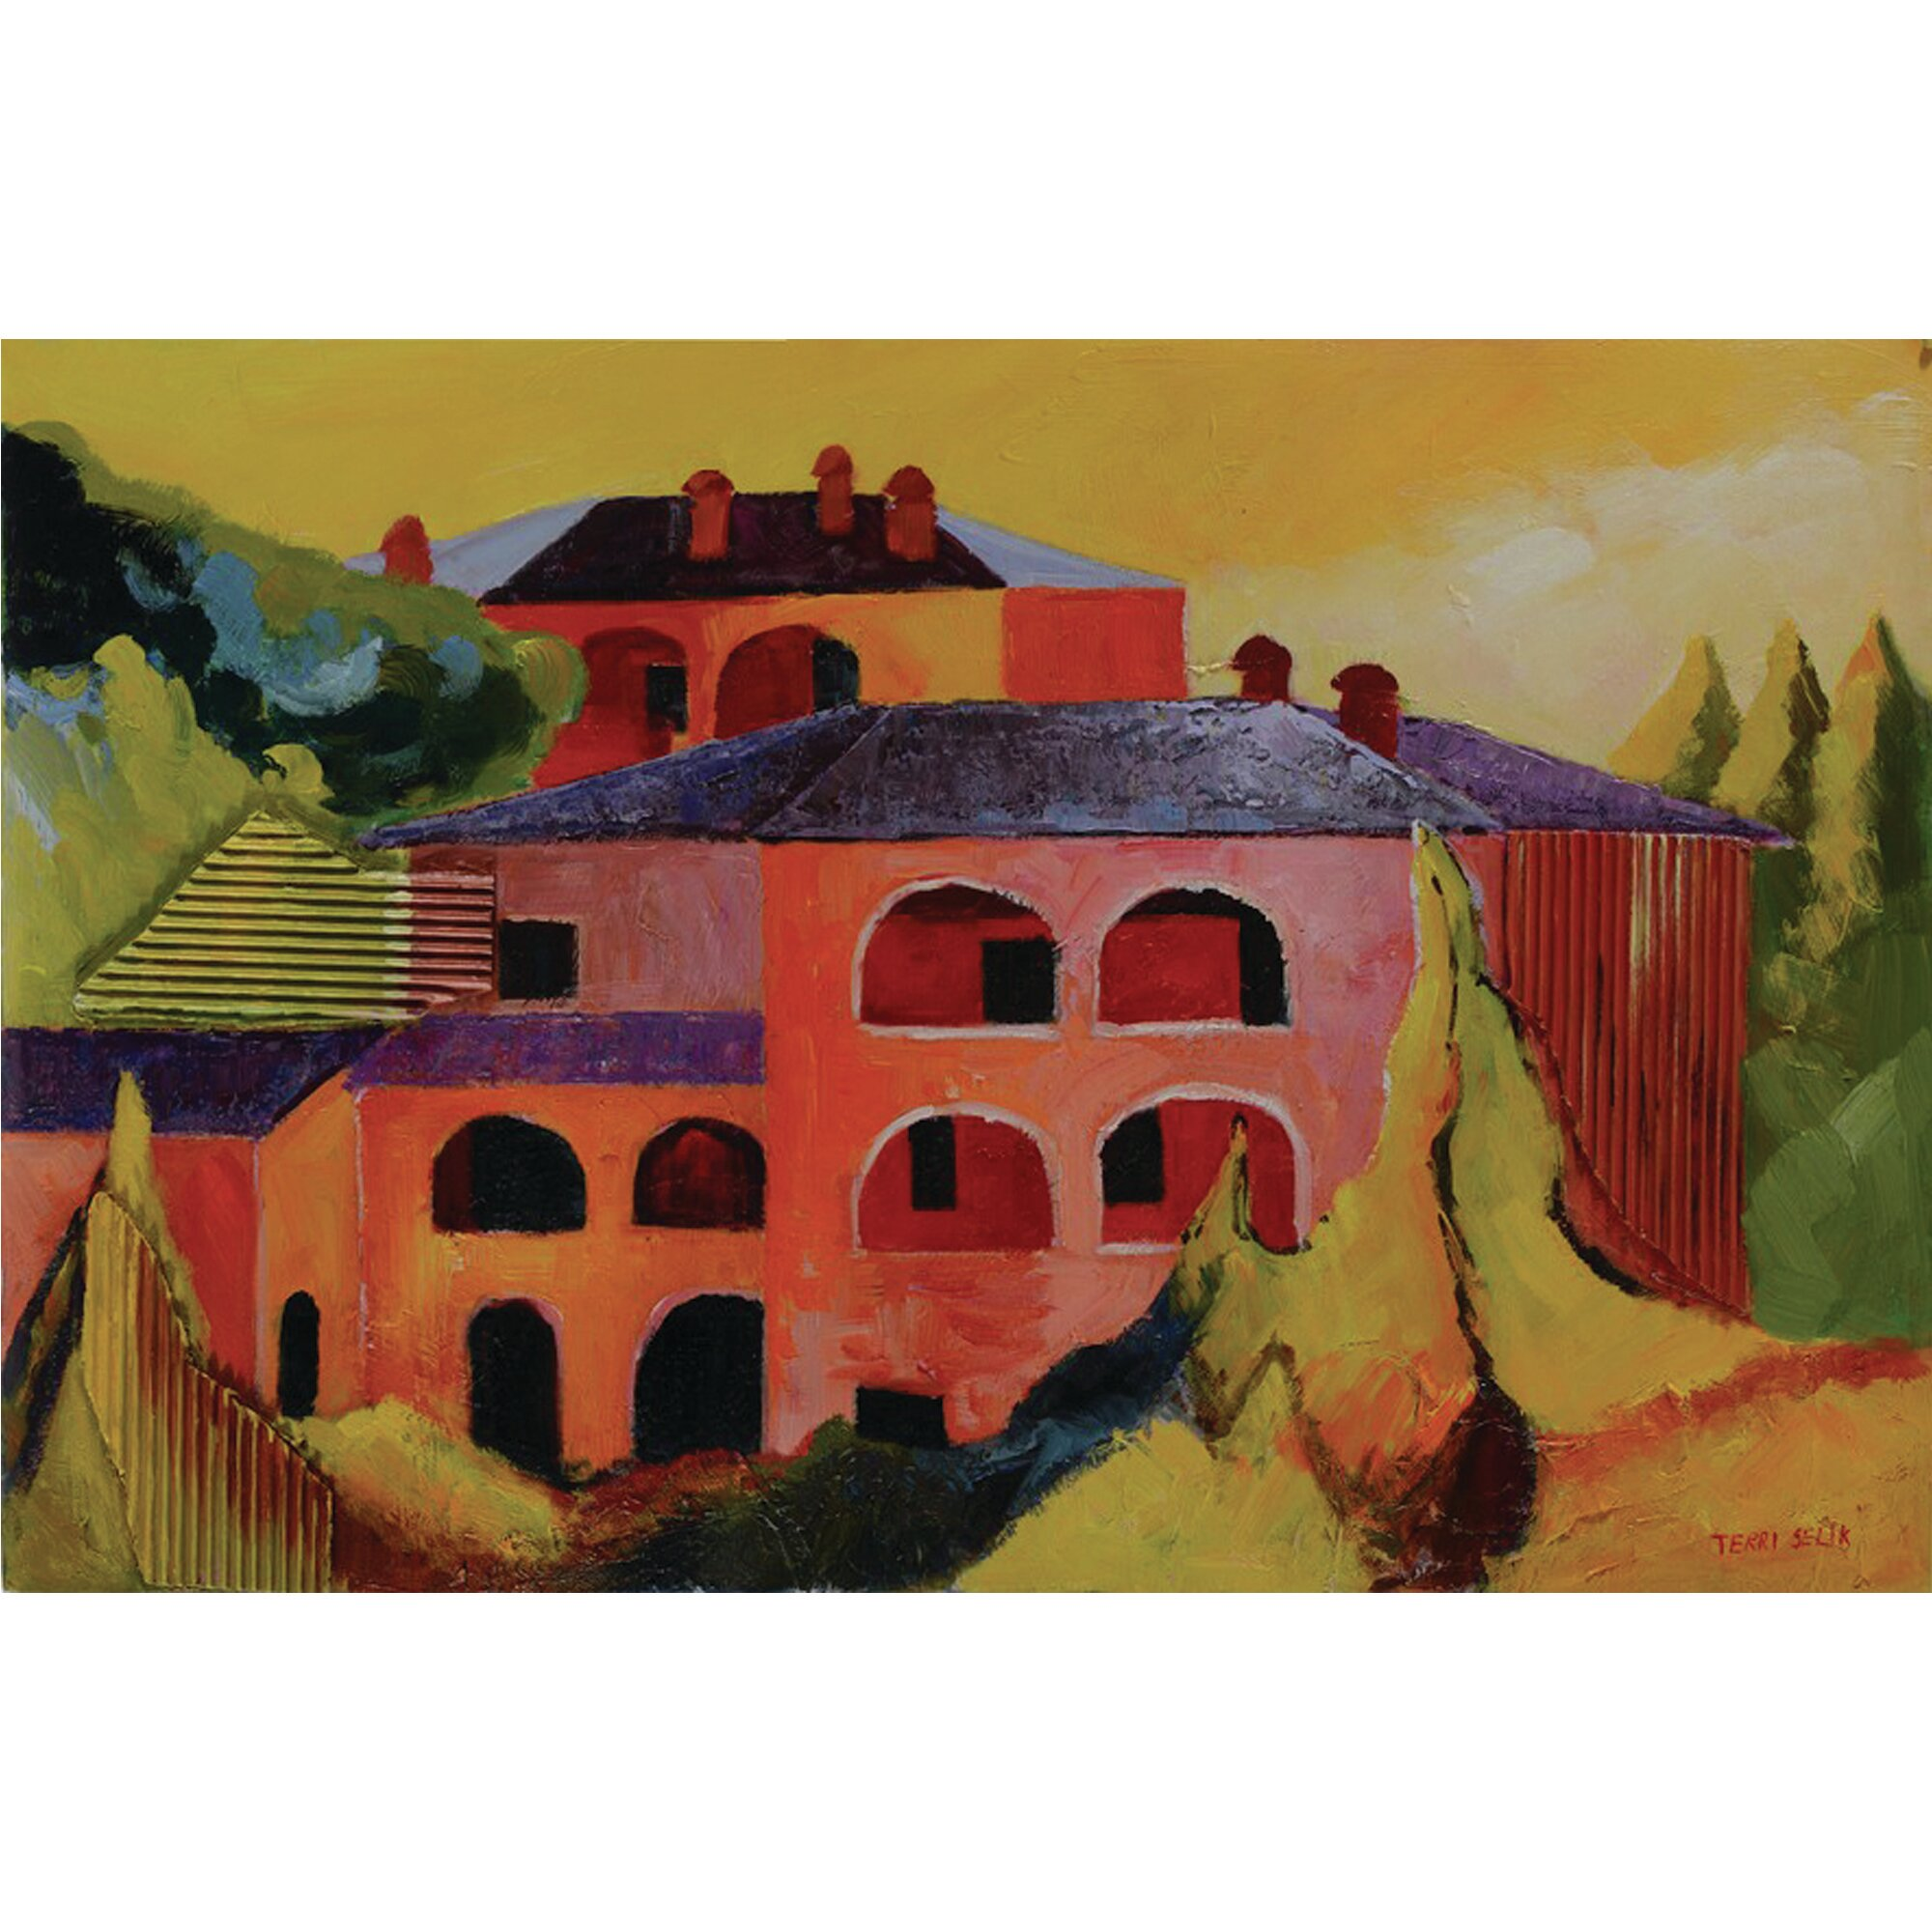 Yosemite Home Decor Tuscan Village Painting on Wrapped  : Yosemite Home Decor Tuscan Village Painting on Wrapped Canvas from www.wayfair.com size 2000 x 2000 jpeg 627kB